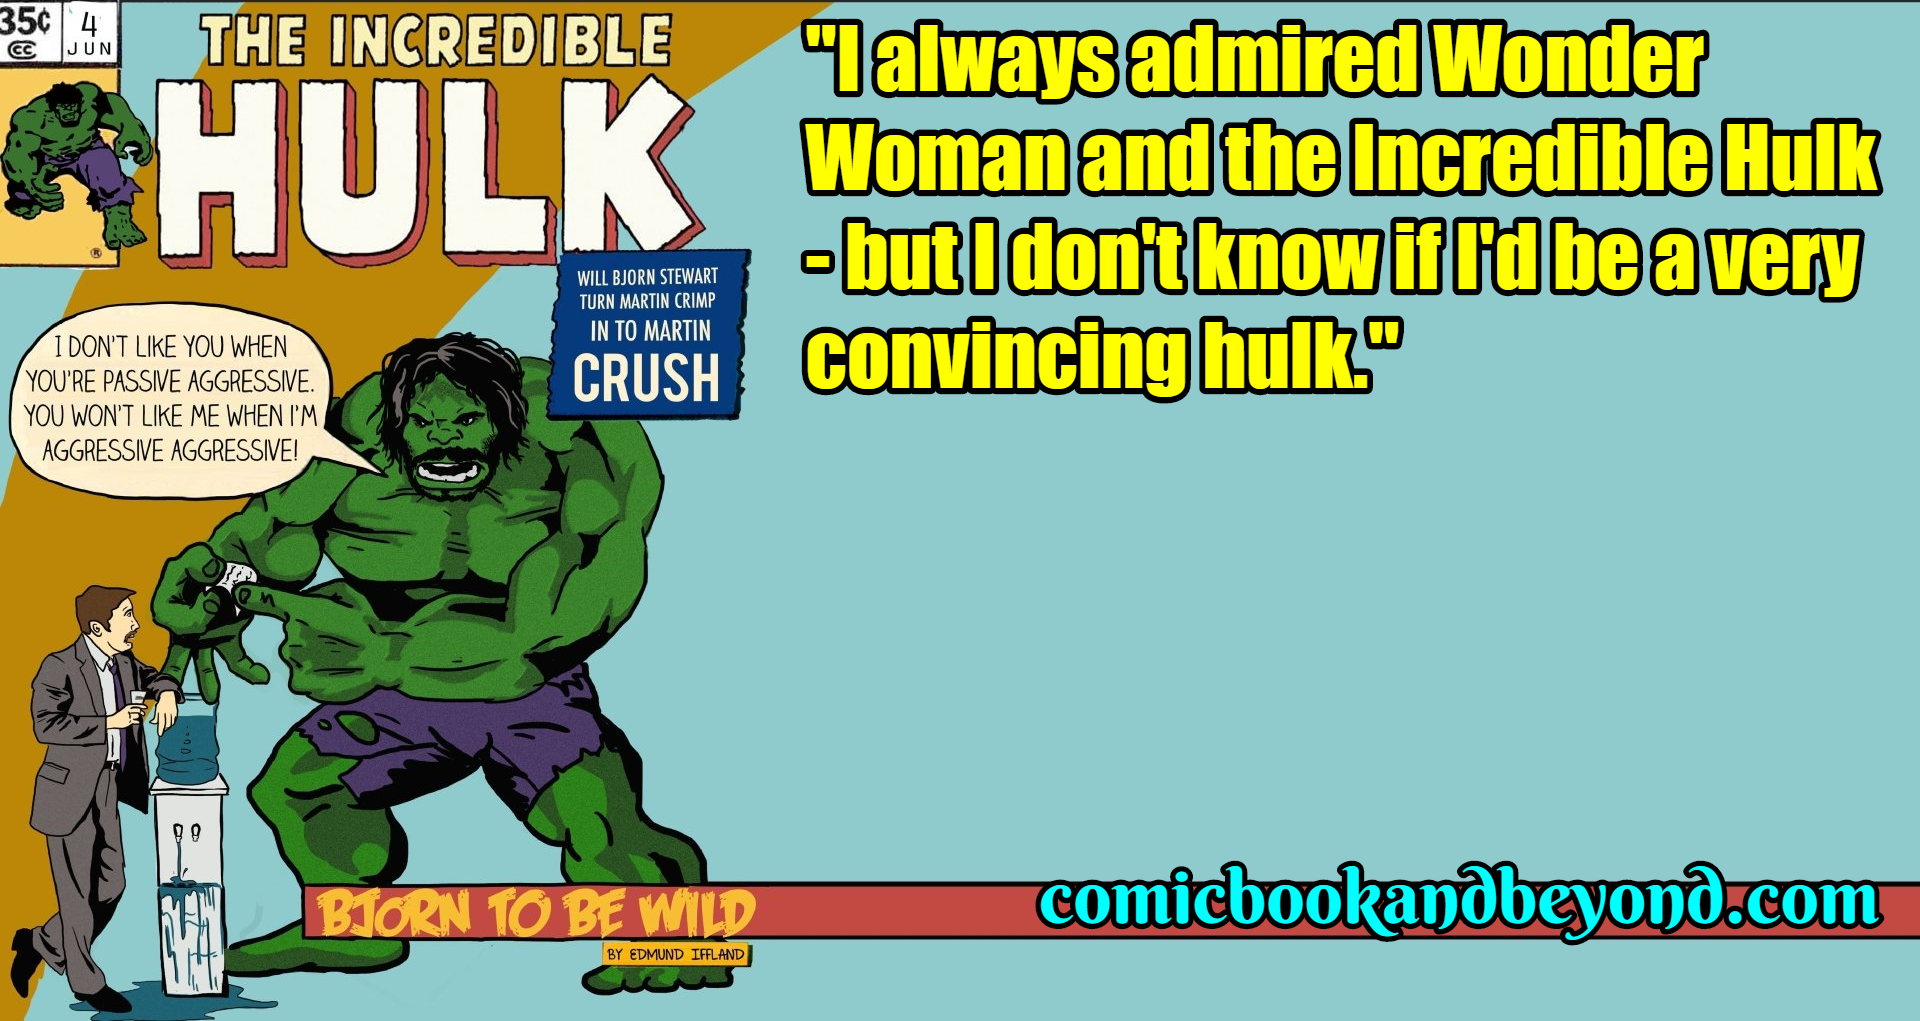 The Incredible Hulk famous quotes